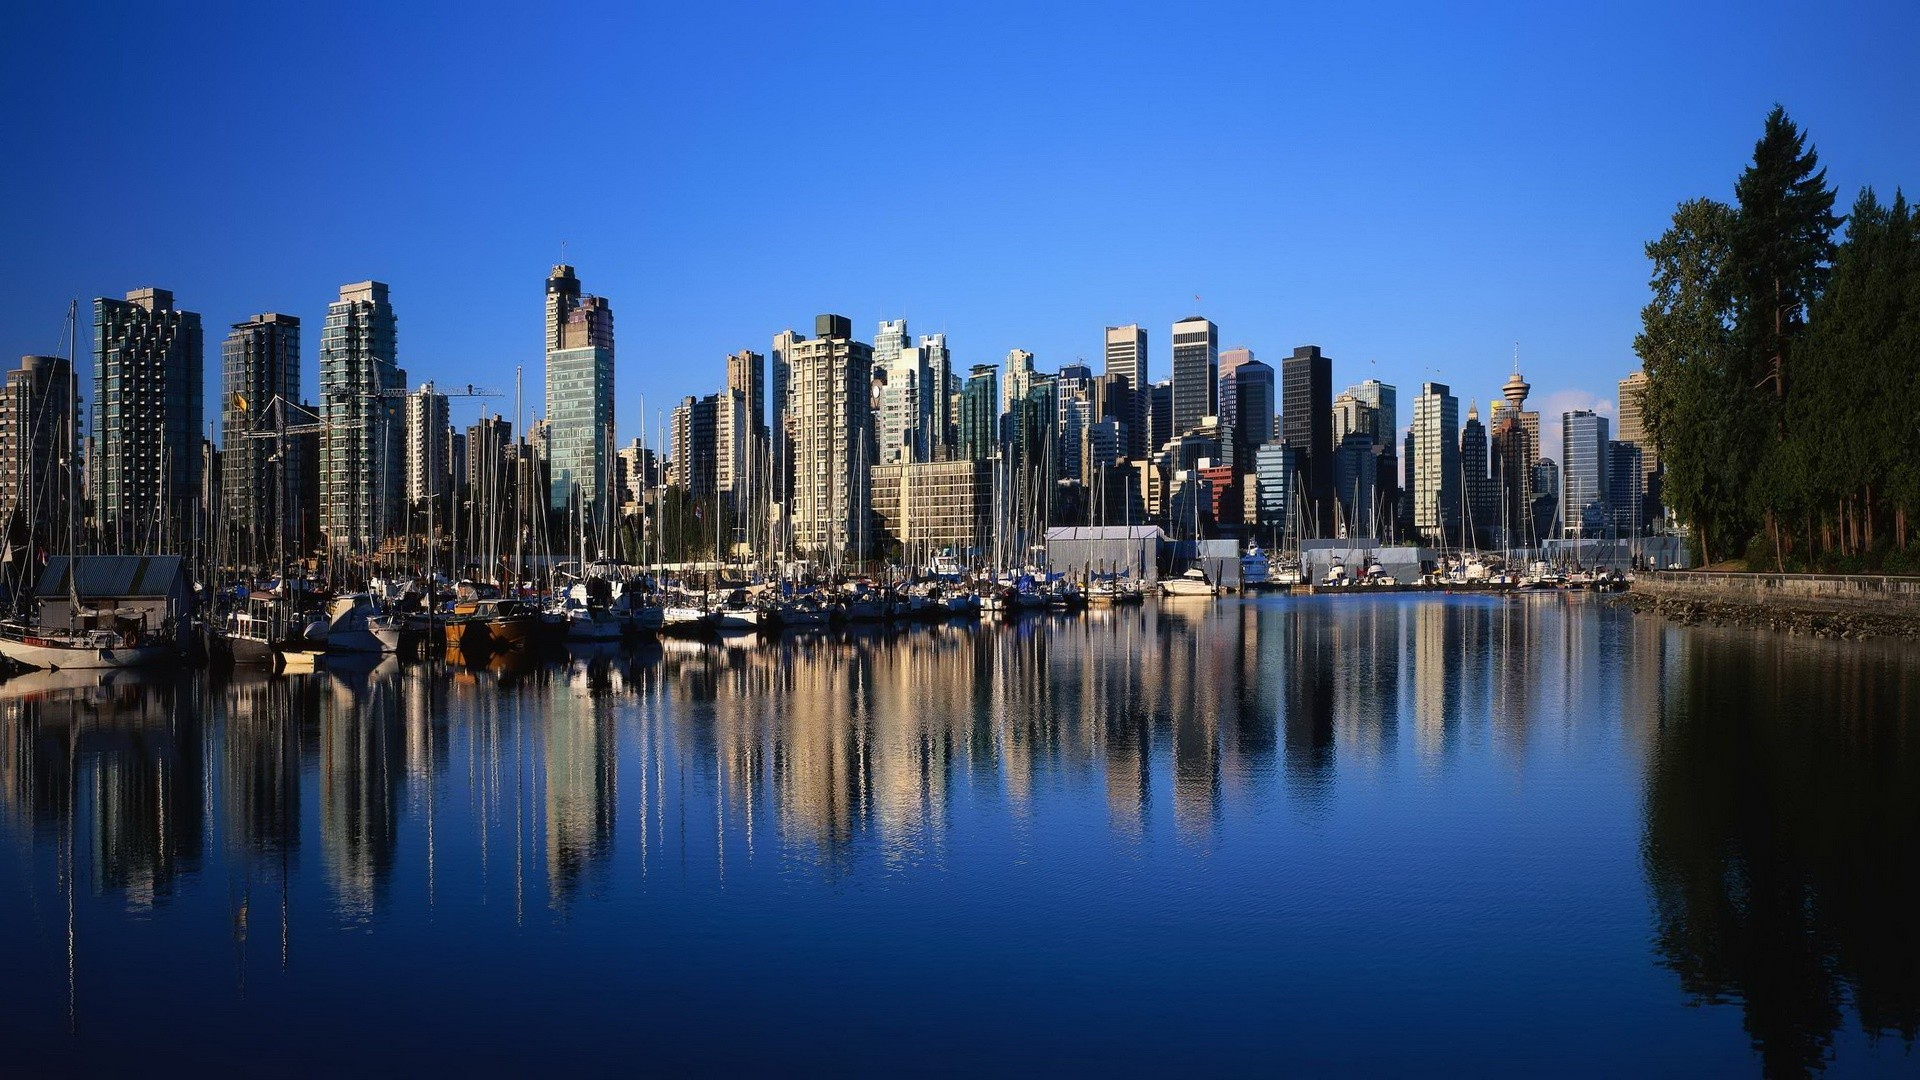 Vancouver wallpaper World Wallpaper Canada Wallpaper Vancouver HD 1920x1080